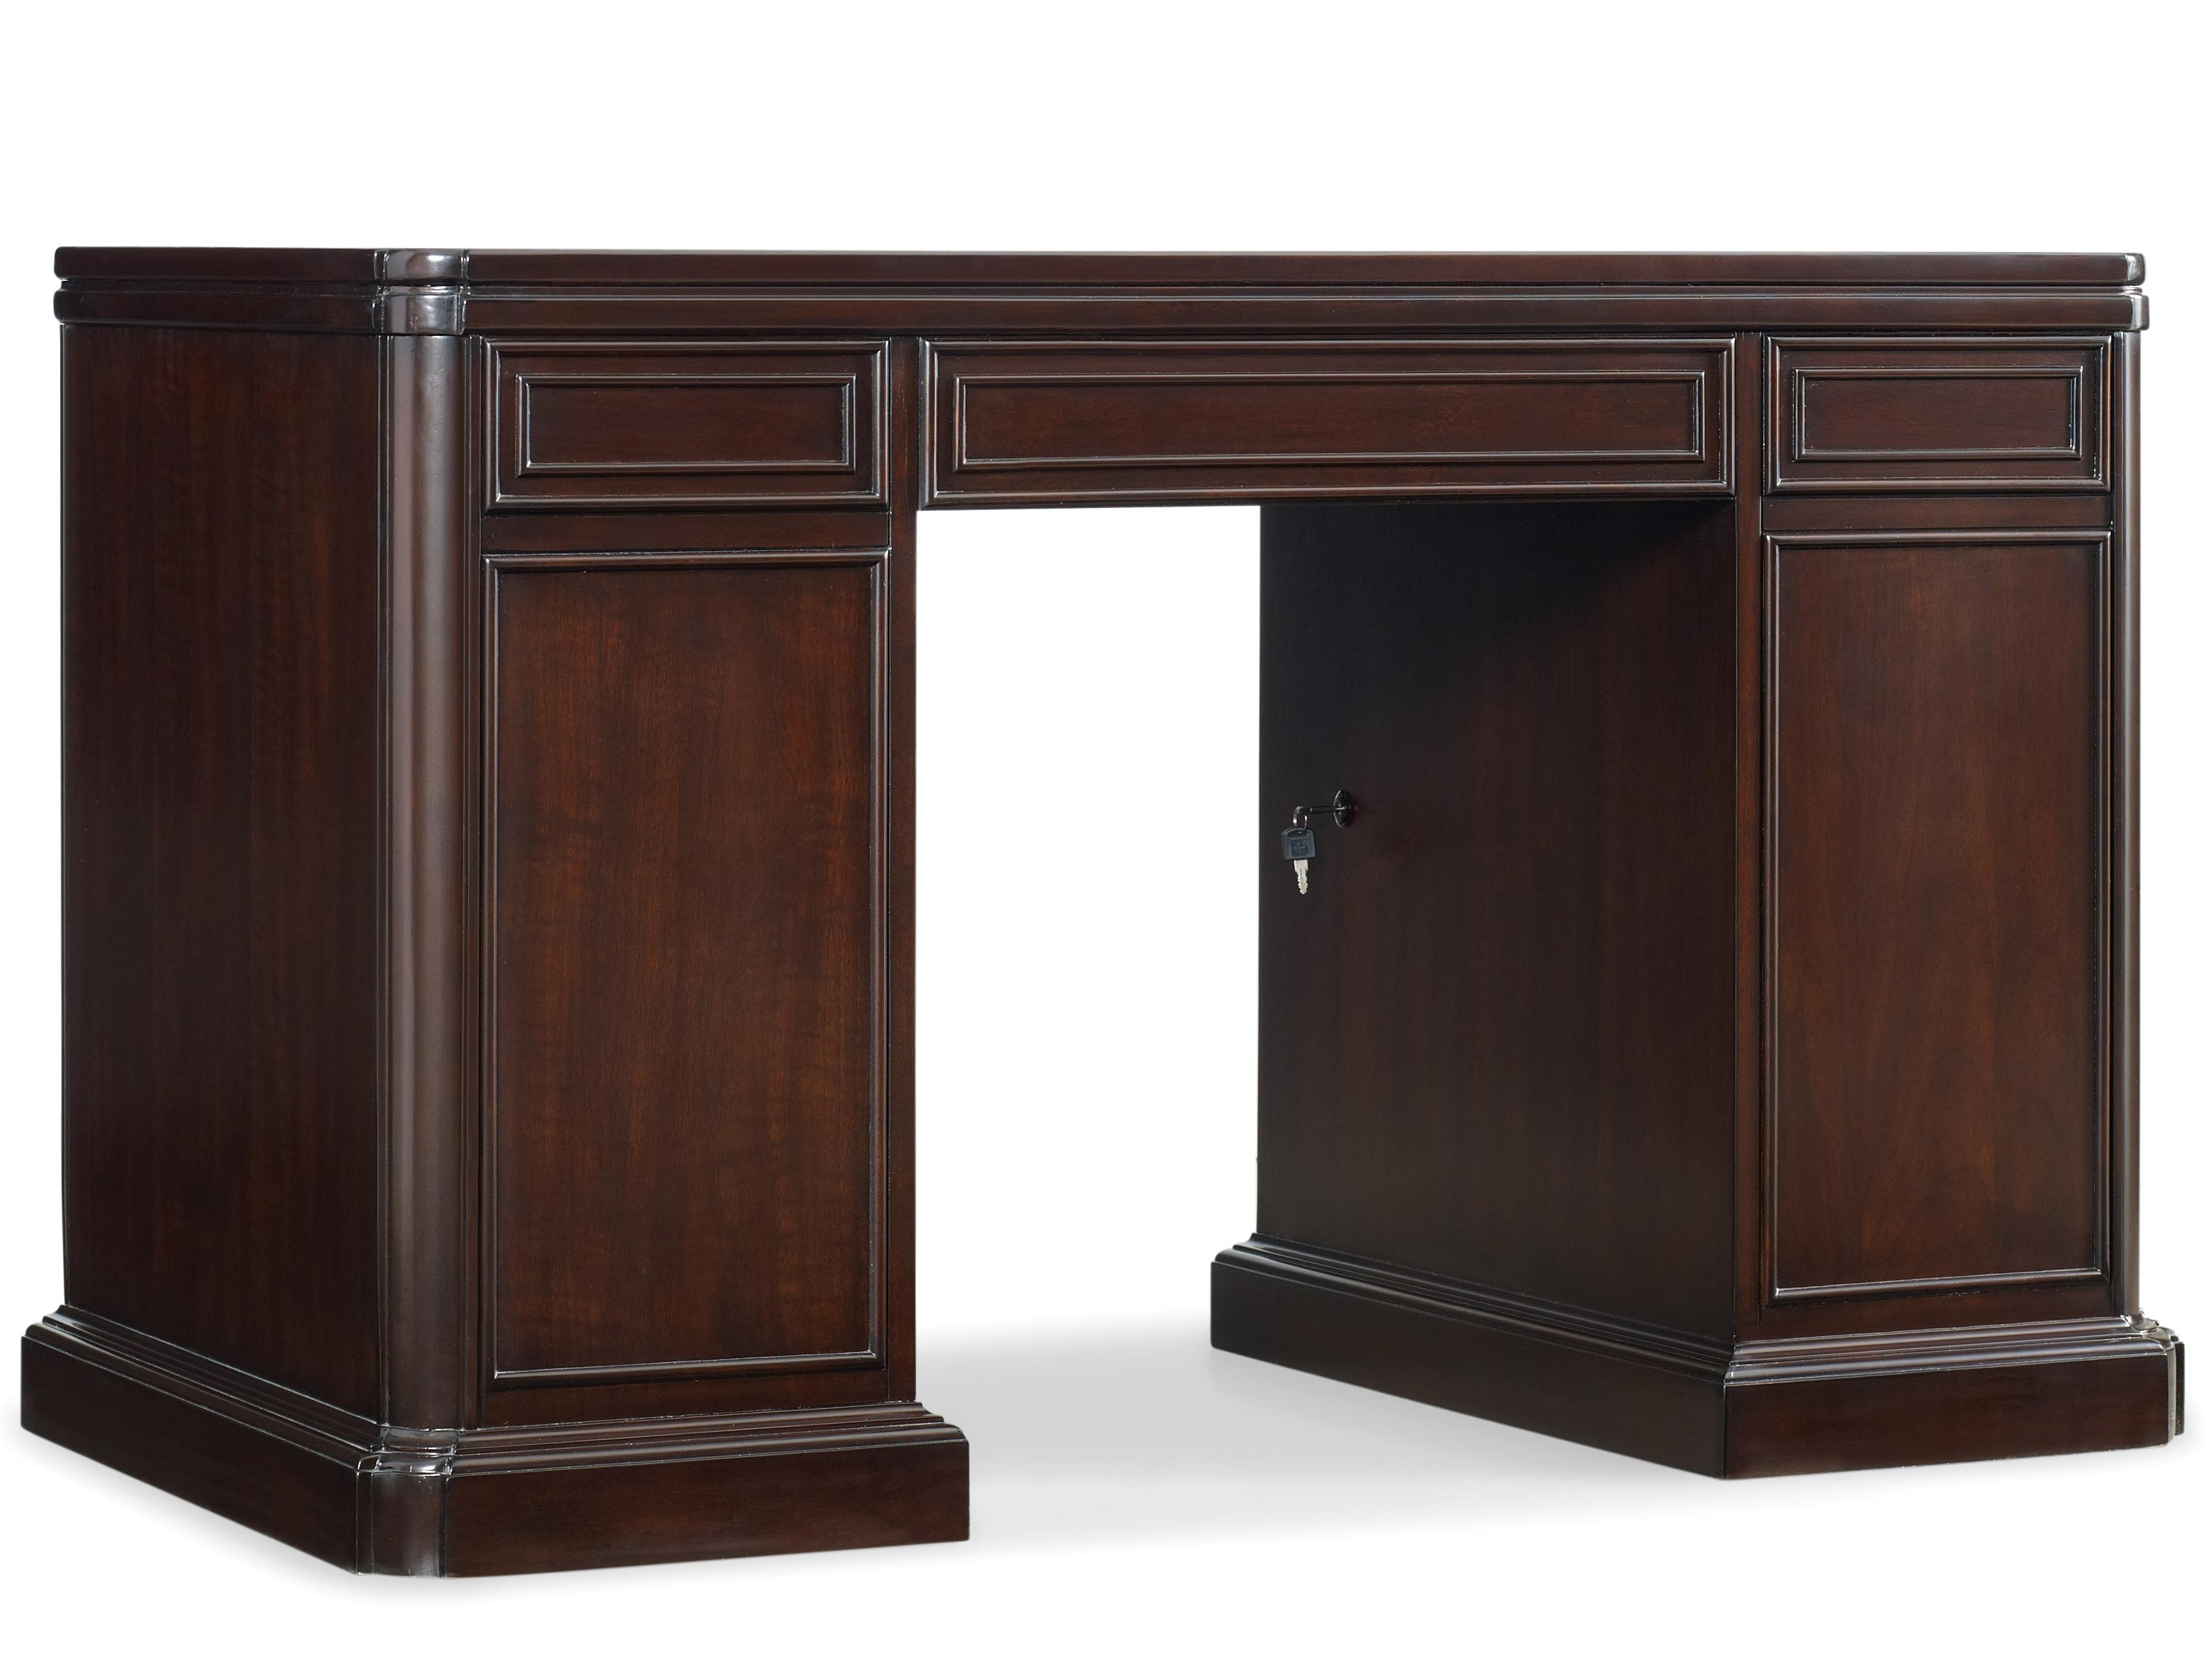 Hamilton Home Home Office Kneehole Desk - Item Number: 5083-10302